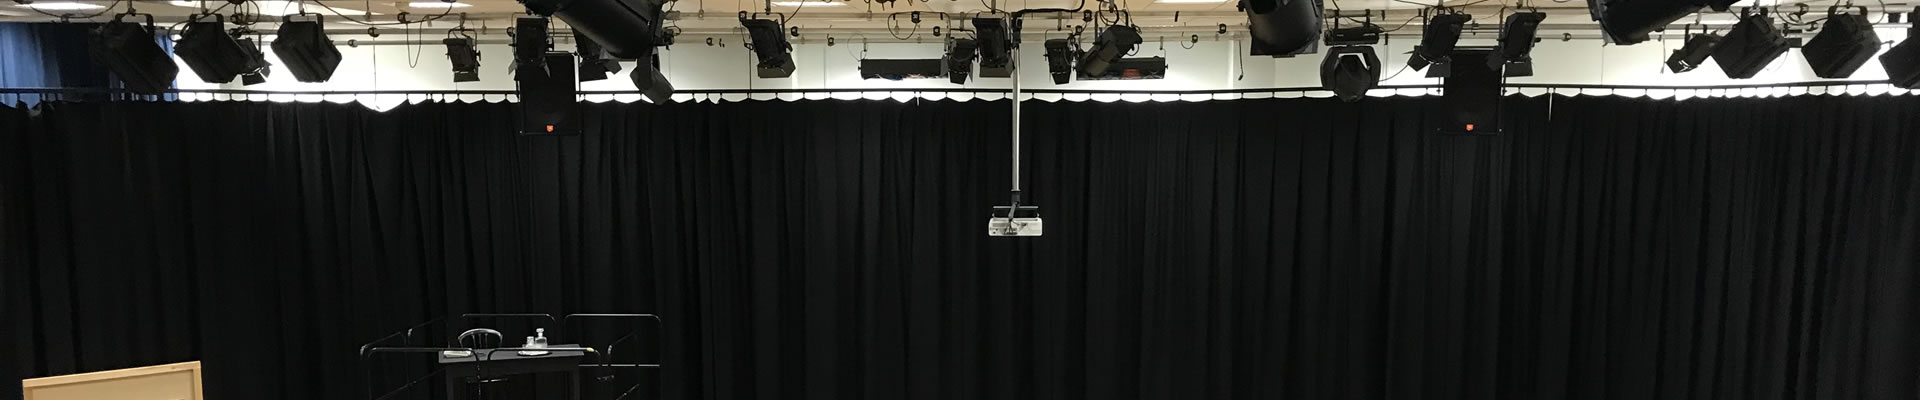 Education Authority Approved School Curtain Blind Supplier